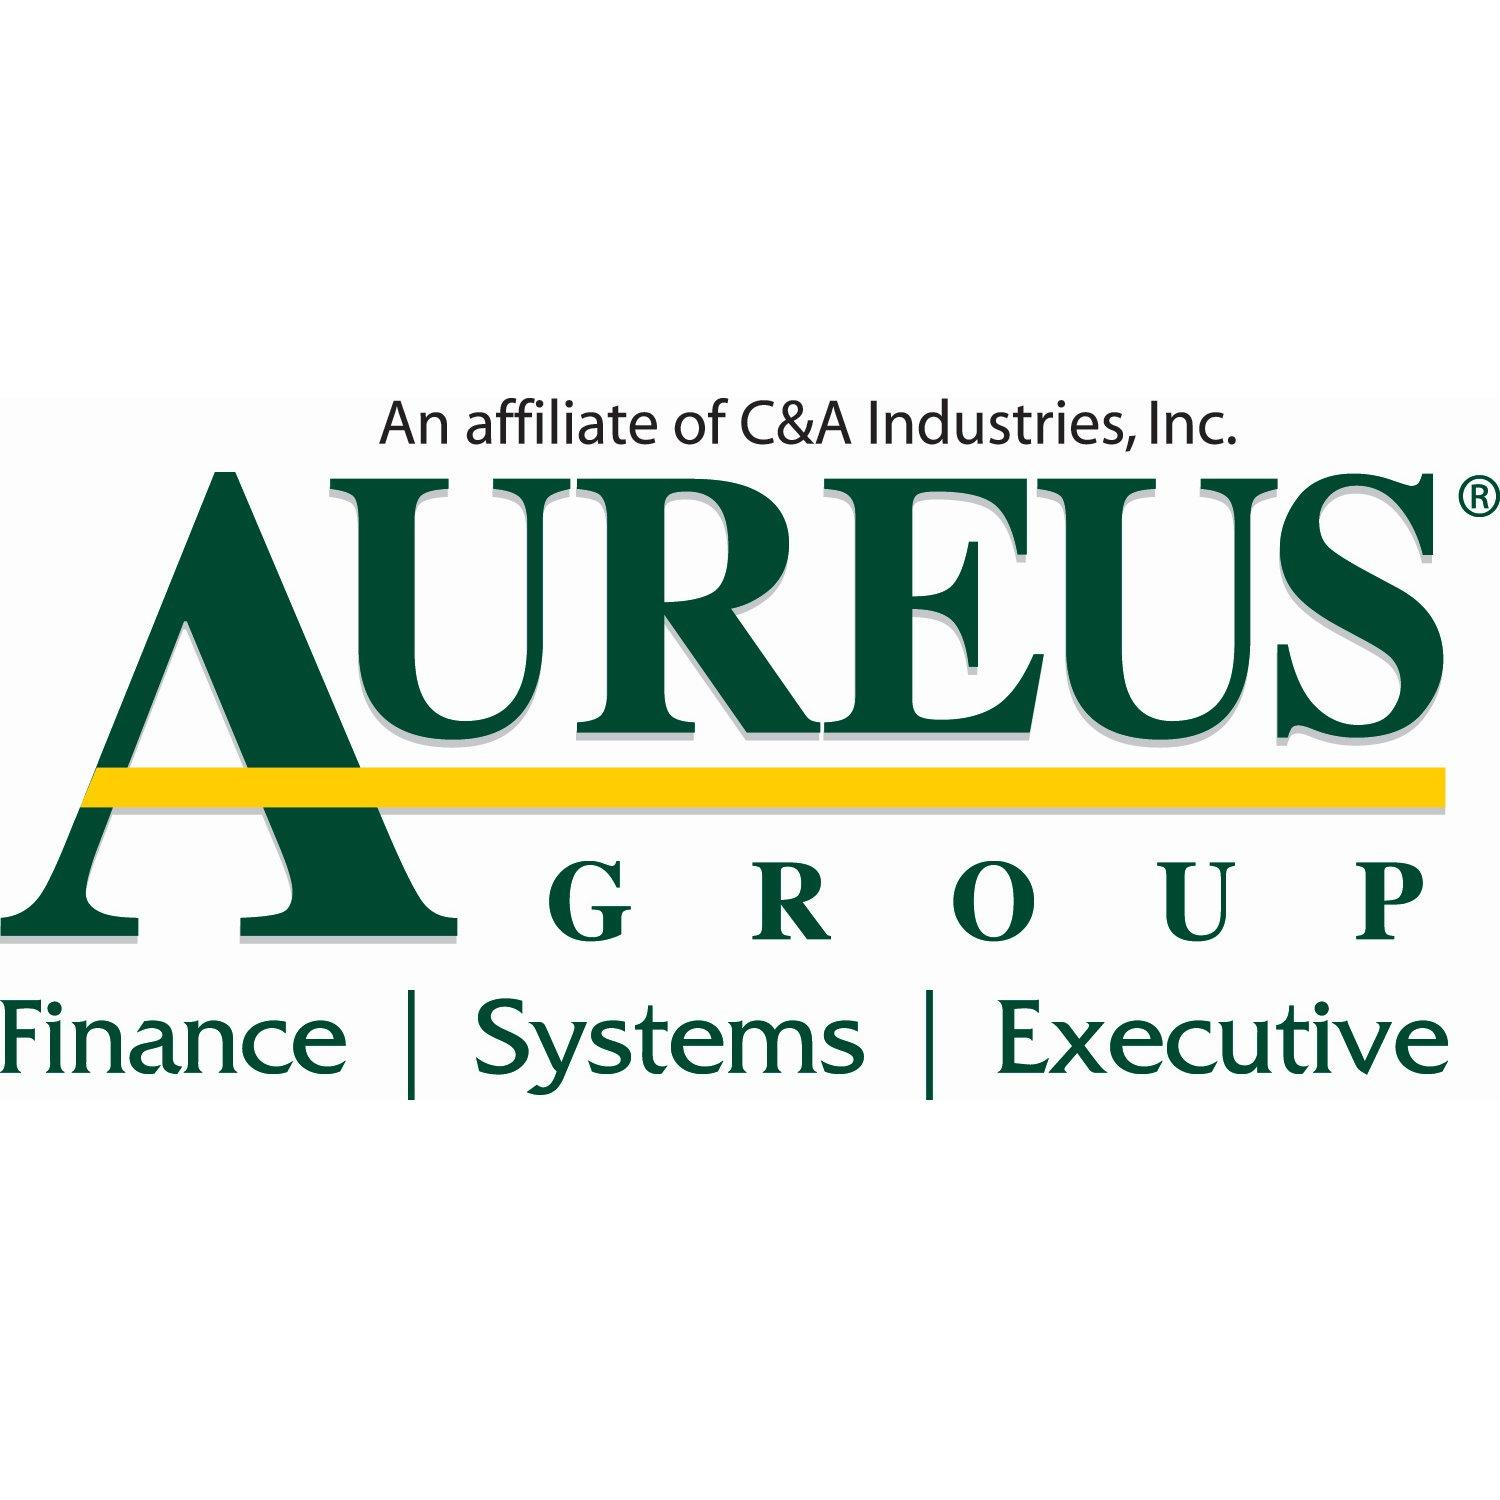 Aureus Group image 1